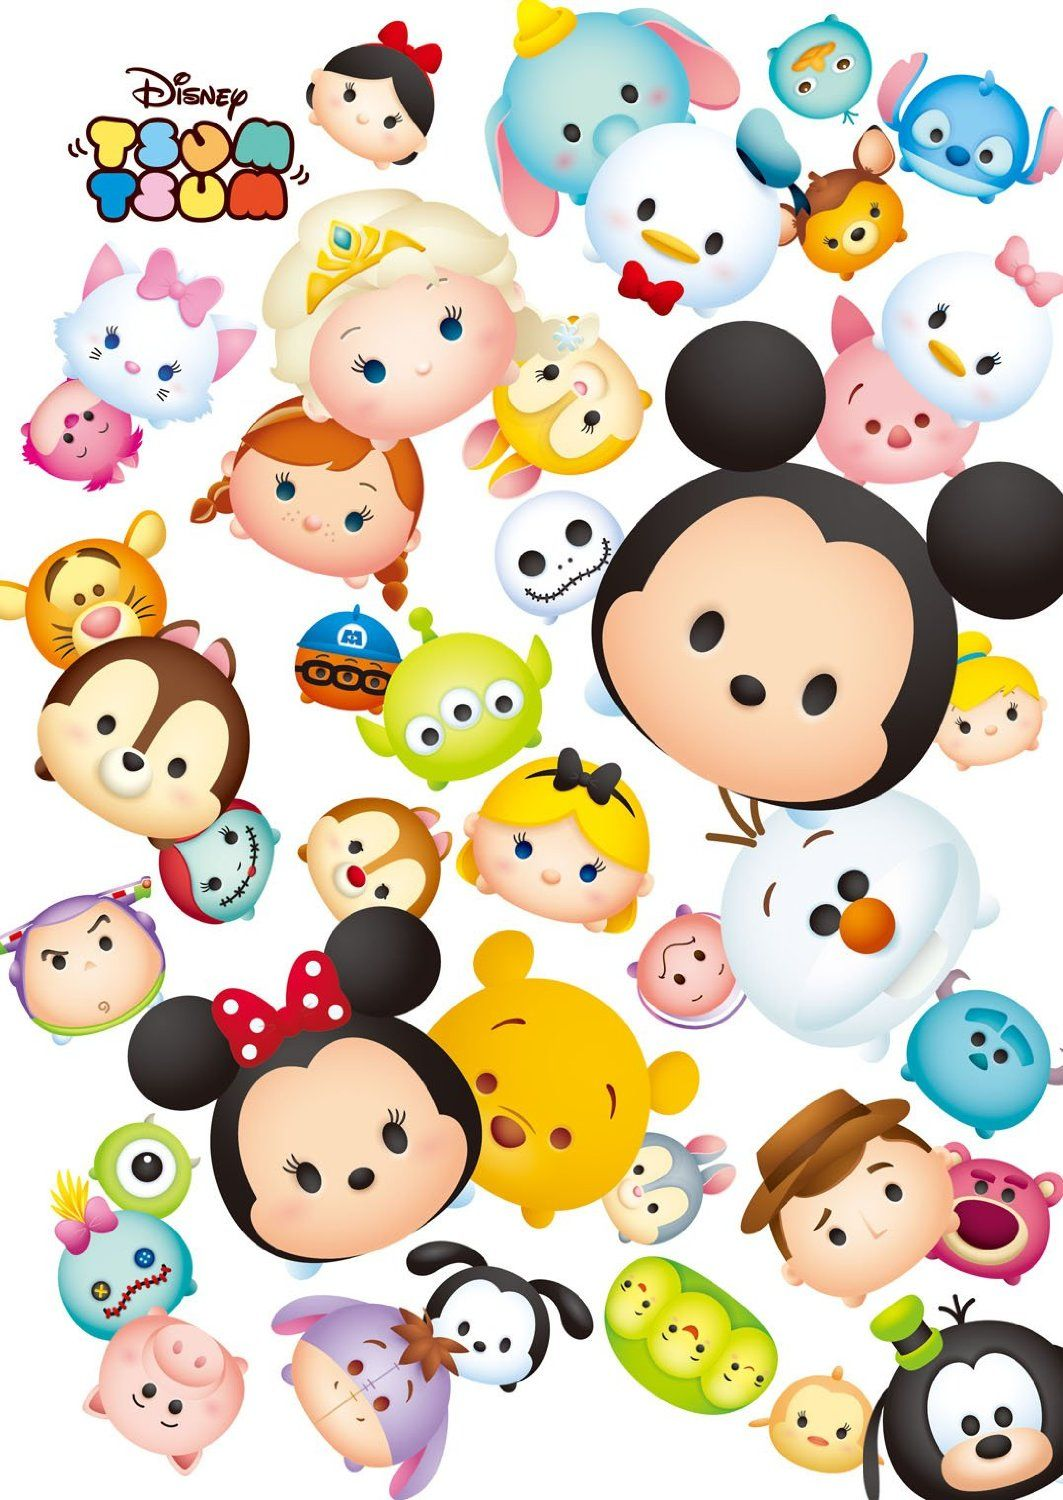 Iphone 6 sticker case - Disney Japan Disney Tsum Tsum Puzzle Tsum Tsum